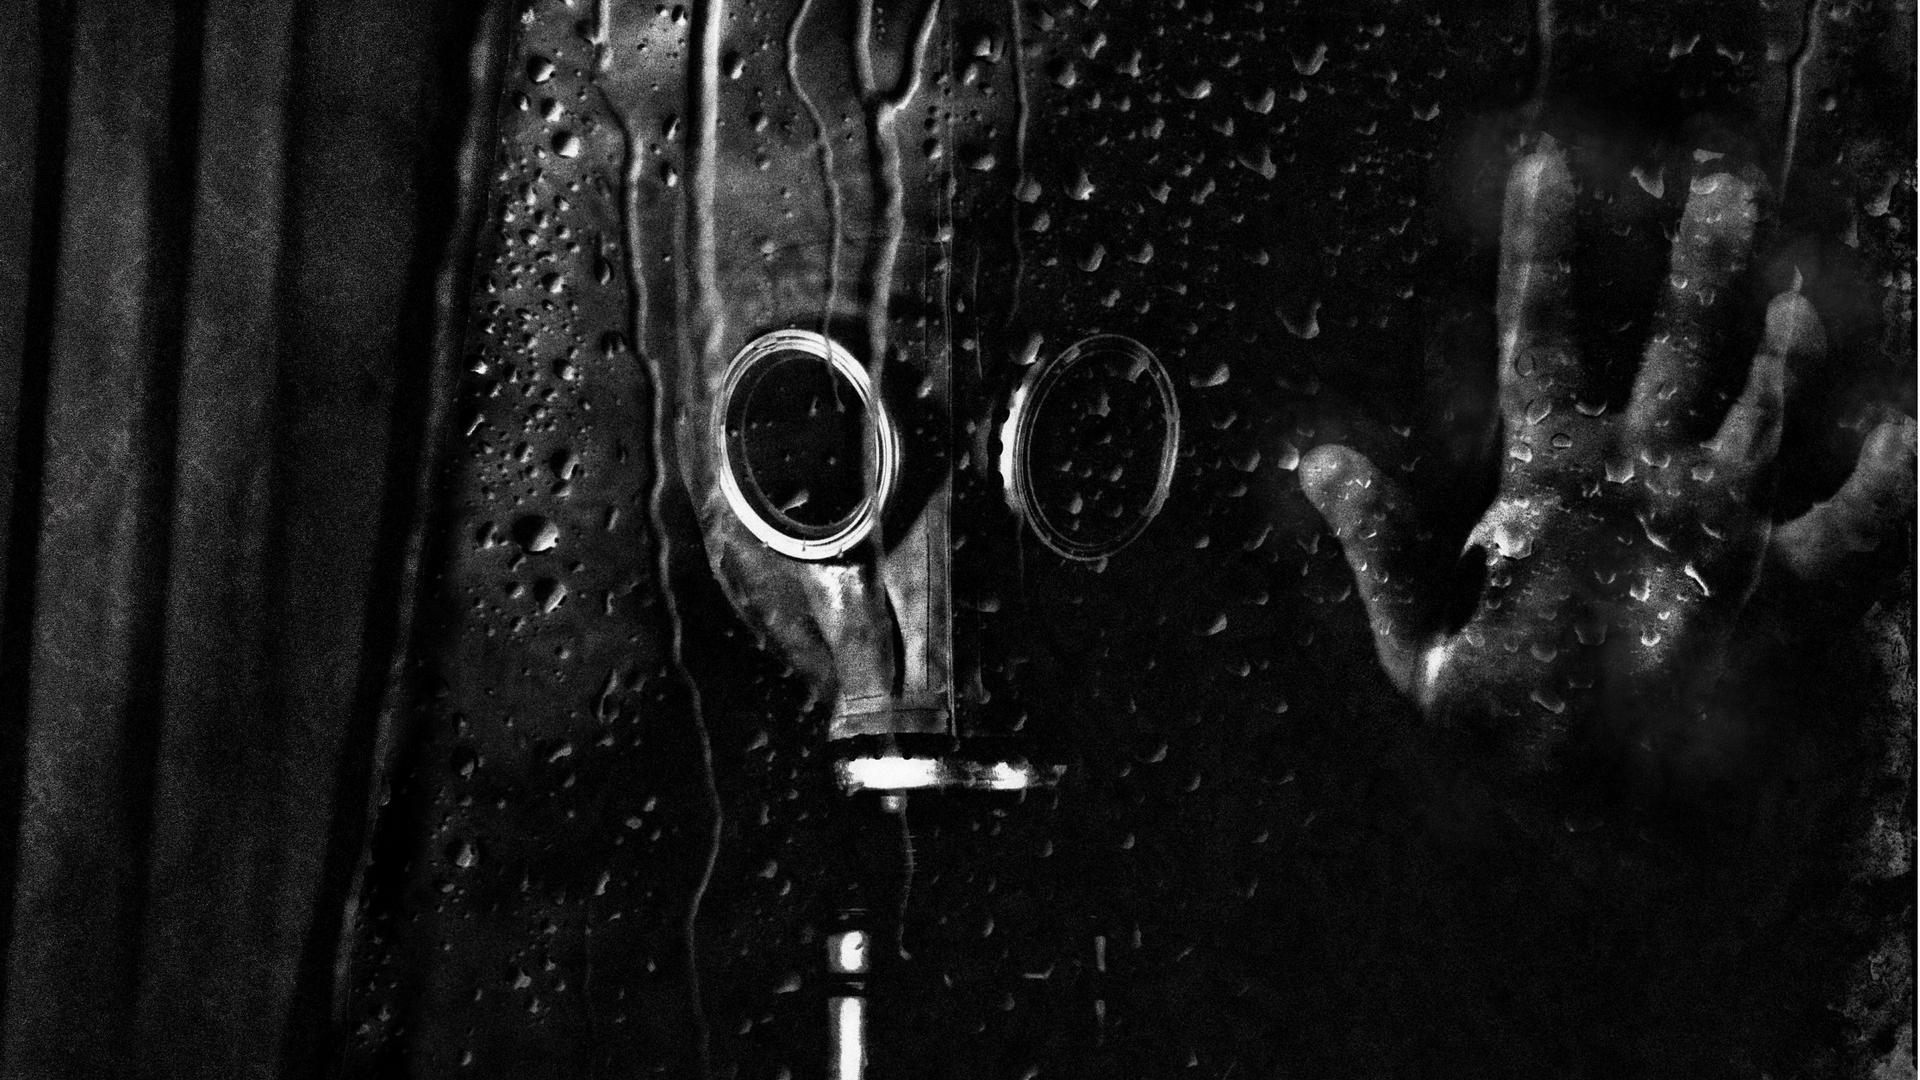 Man With Gas Mask On His Face Looking Out The Window Wallpaper Download 1920x1080